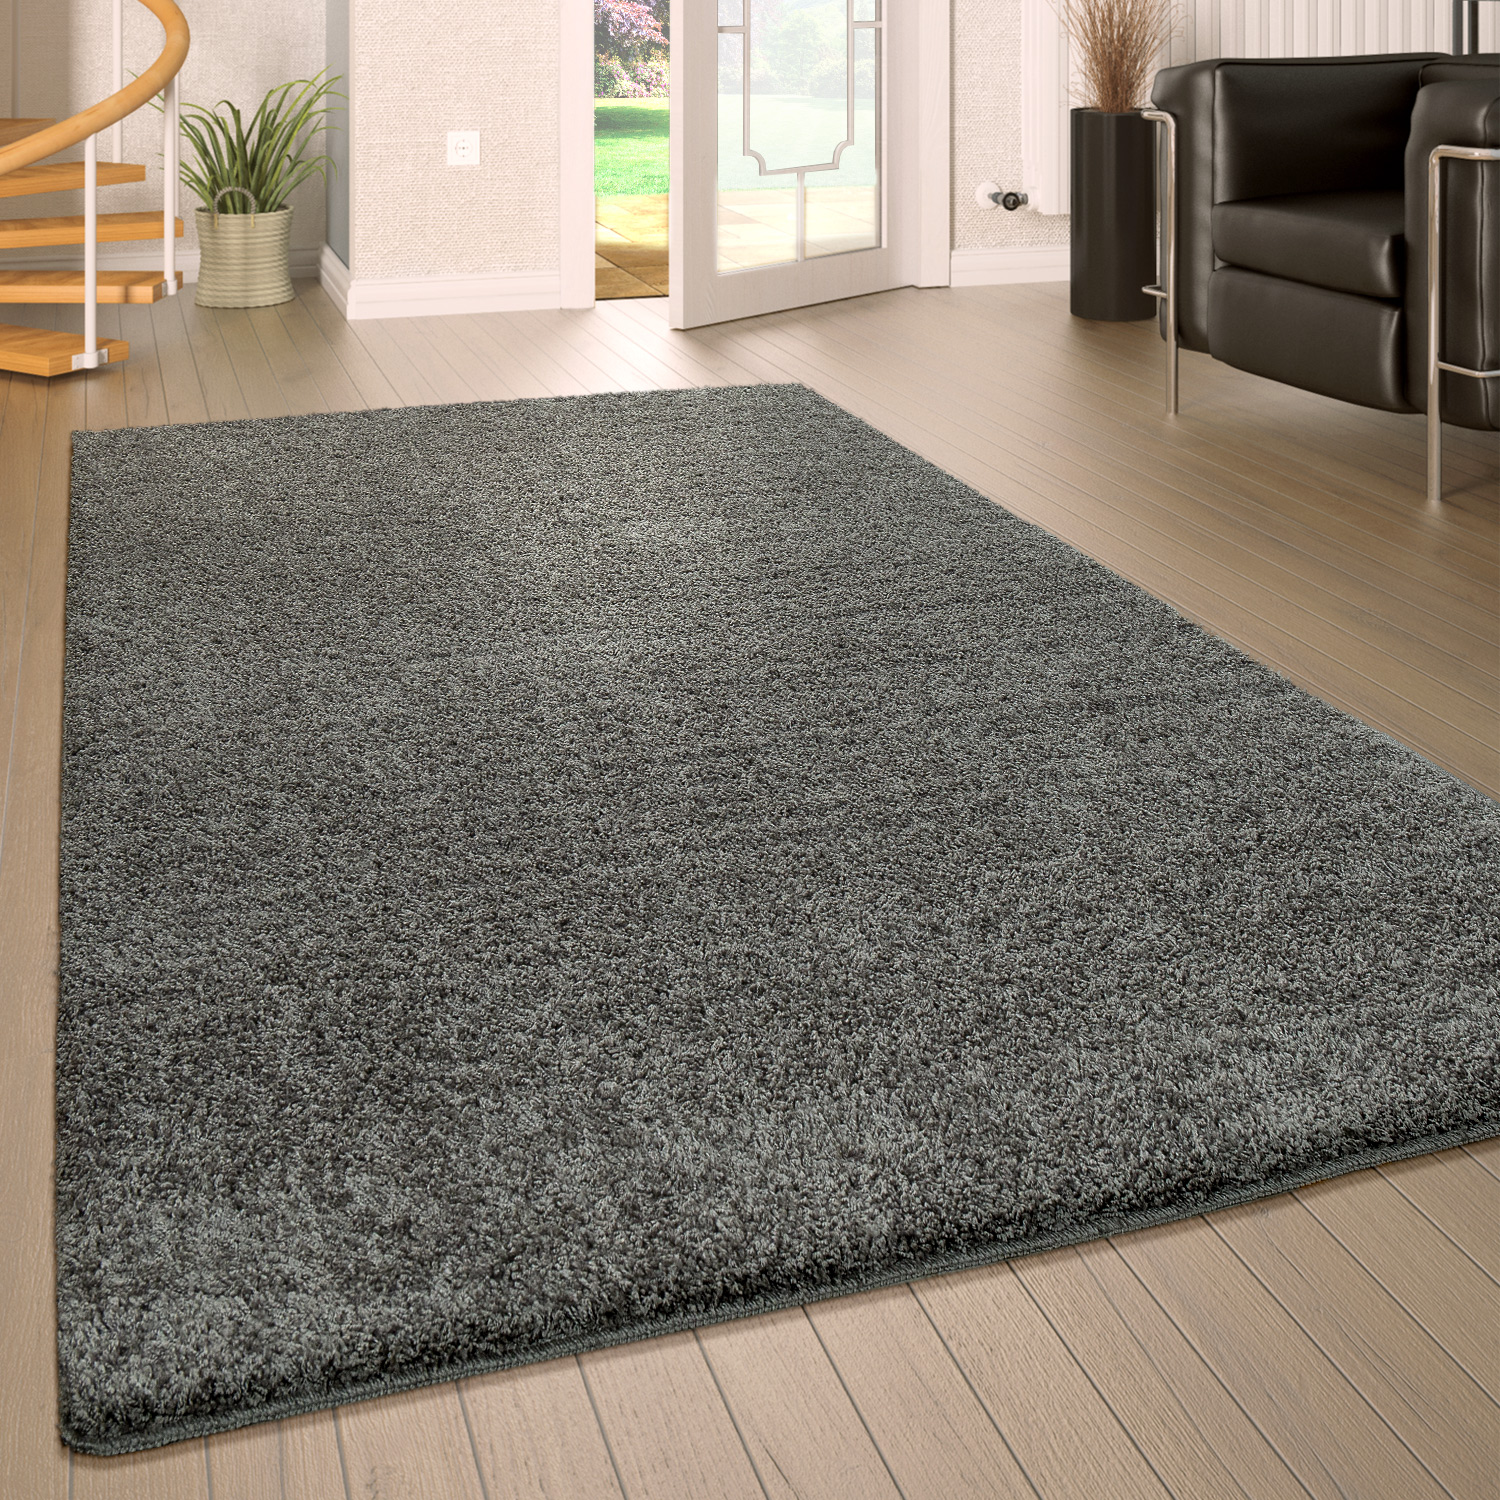 Deep Pile Living Room Rug Washable Shaggy Non-Slip One Colour In Grey